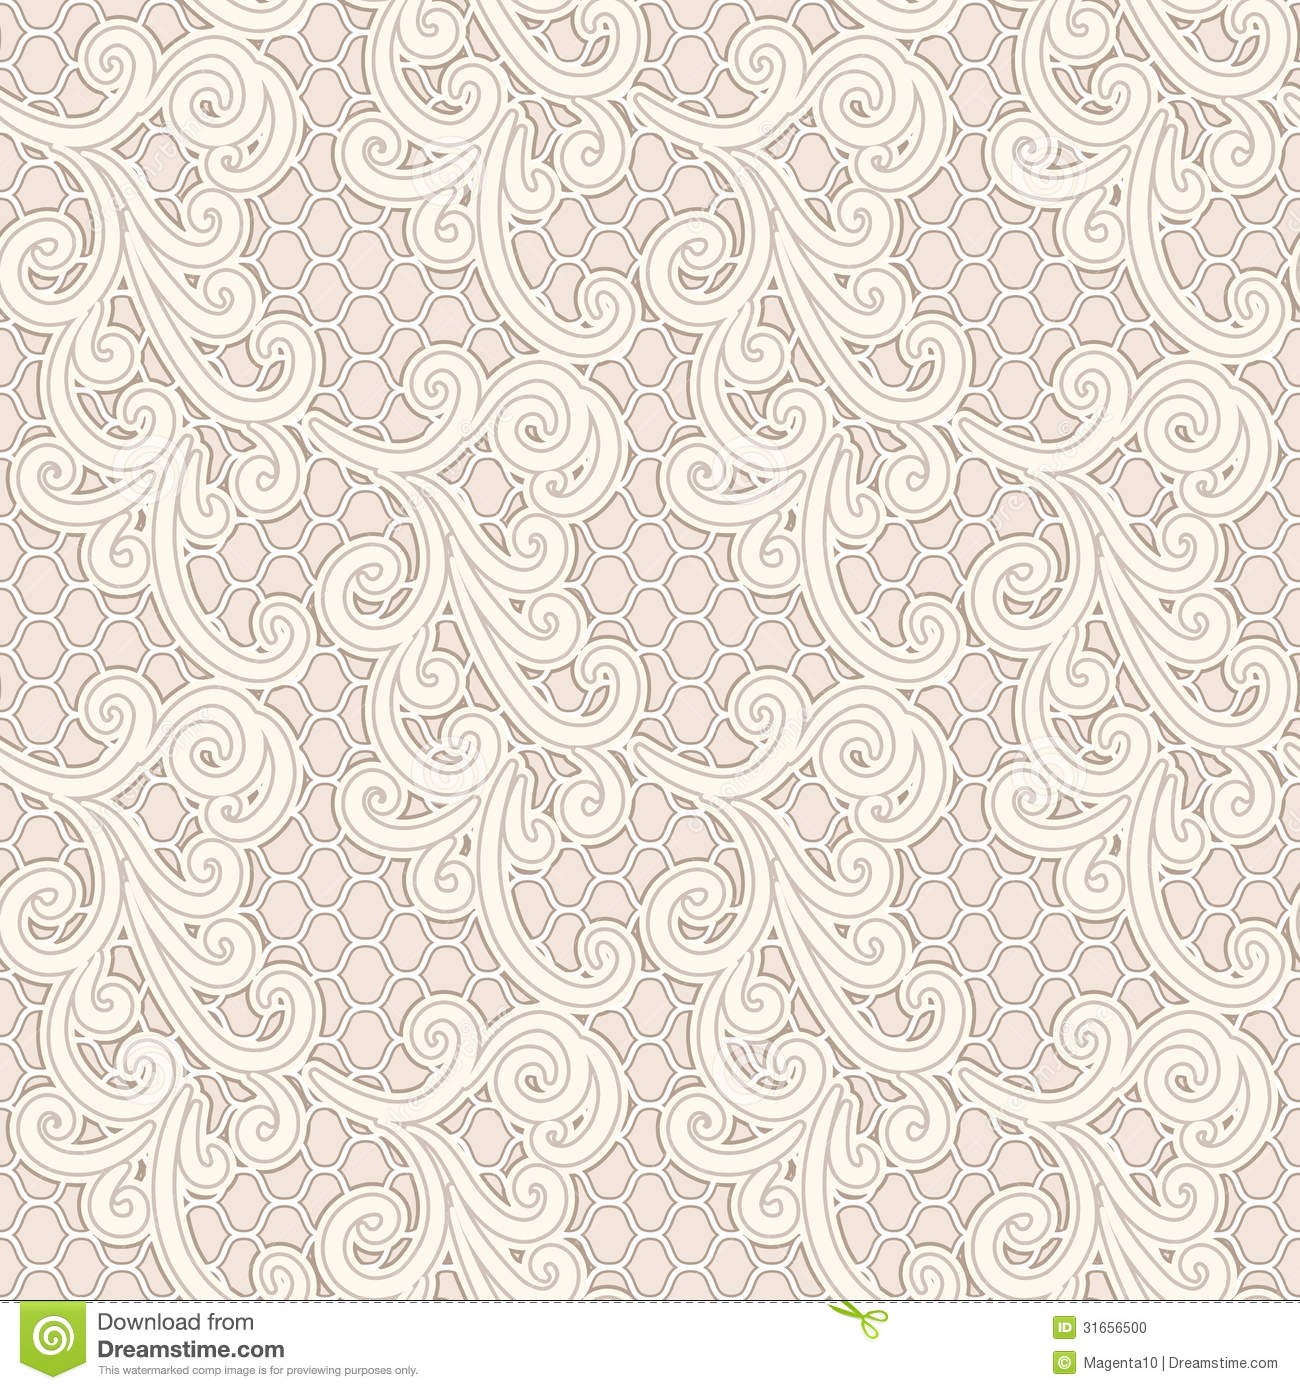 Old lace seamless pattern stock vector. Image of background - 31656500